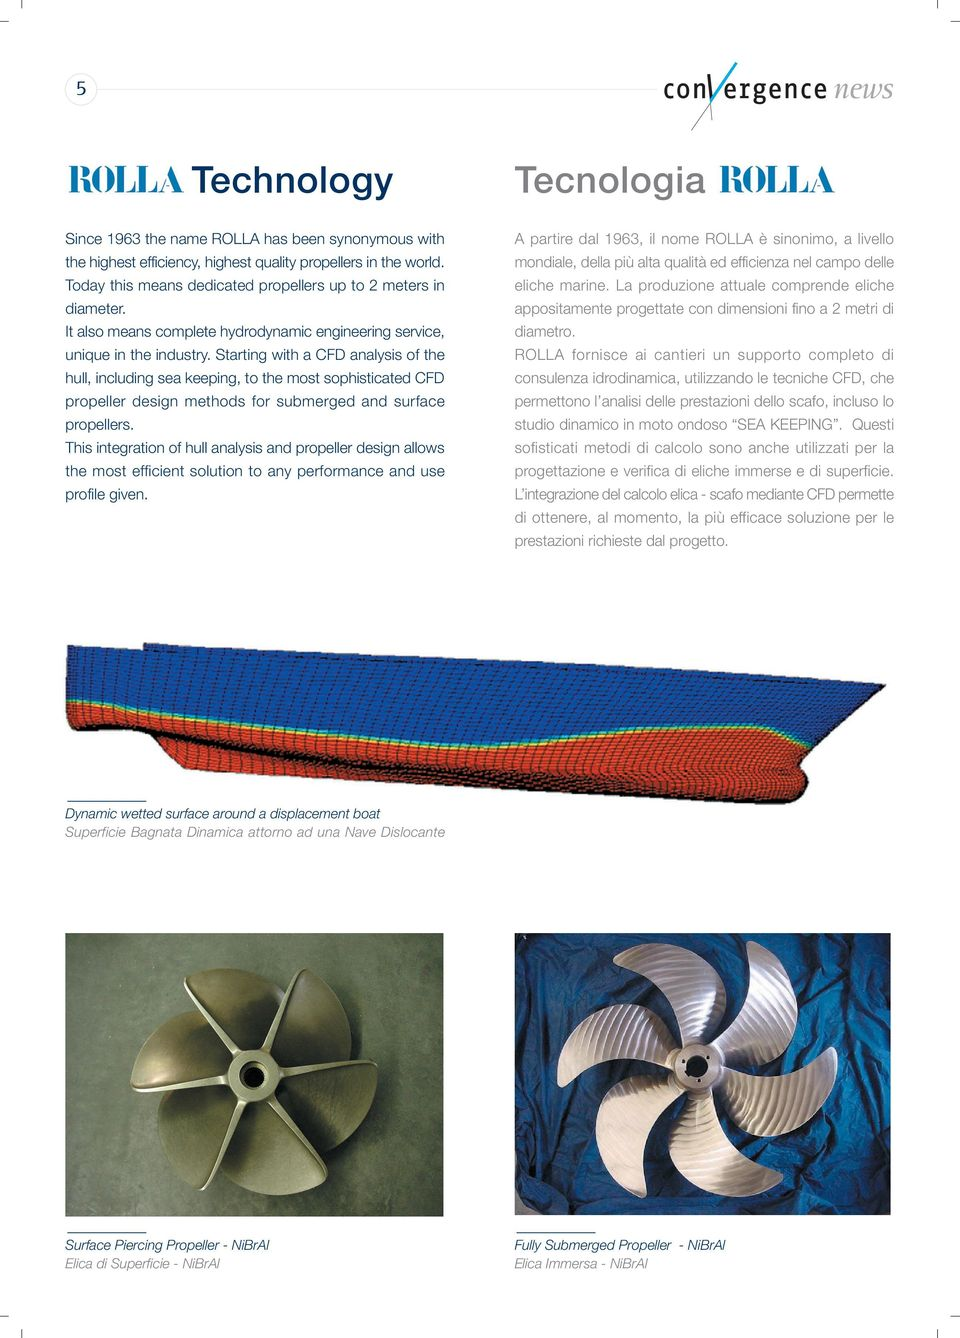 Starting with a CFD analysis of the hull, including sea keeping, to the most sophisticated CFD propeller design methods for submerged and surface propellers.